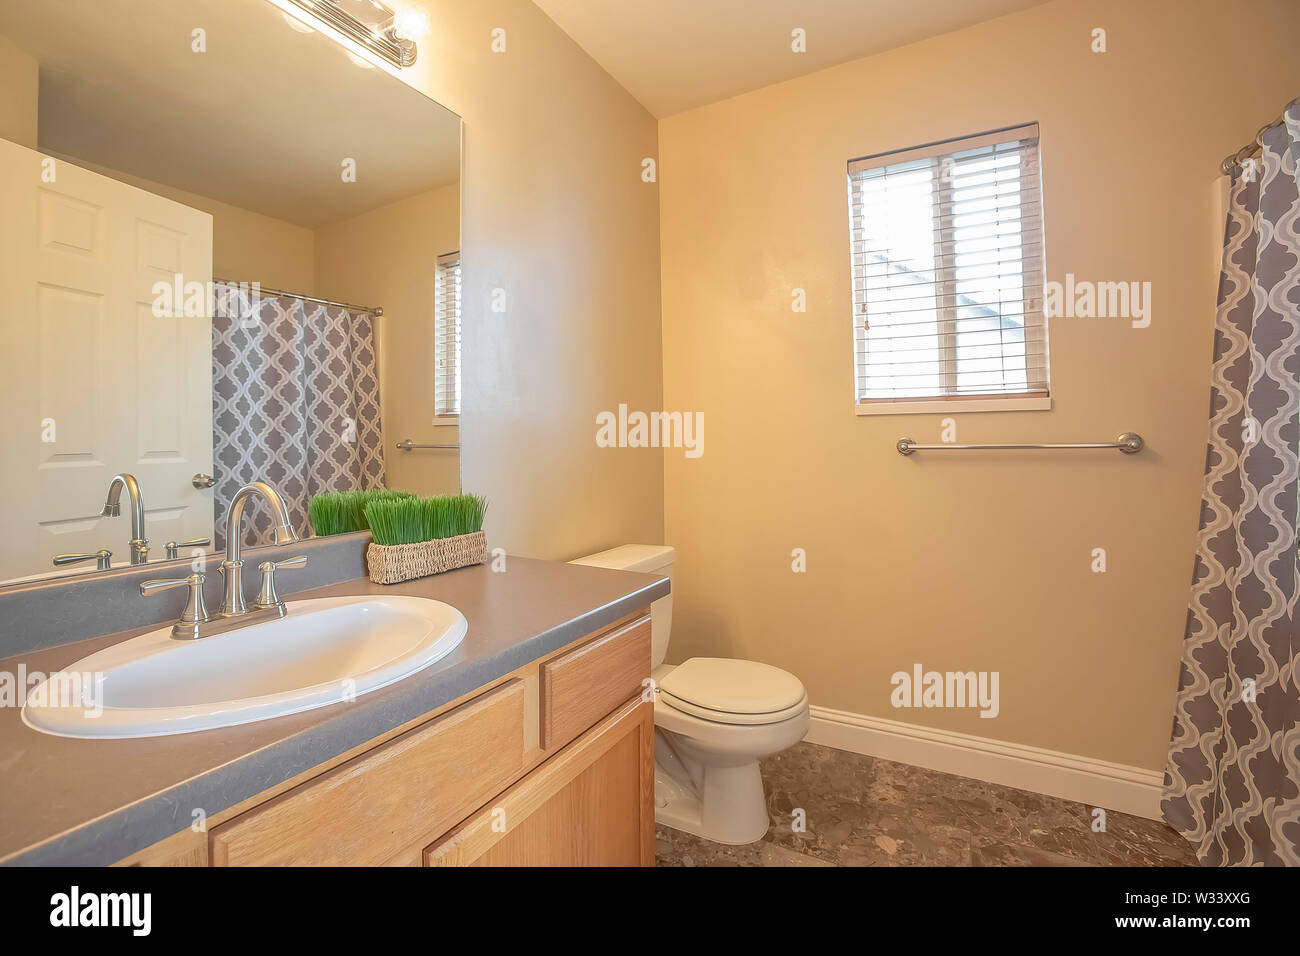 Bathroom Interior With Close Up Of Sink Cabinet And Mirror Beside The Toilet Small Window Towel Rod And Shower Curtain Can Also Be Seen Inside This Stock Photo Alamy